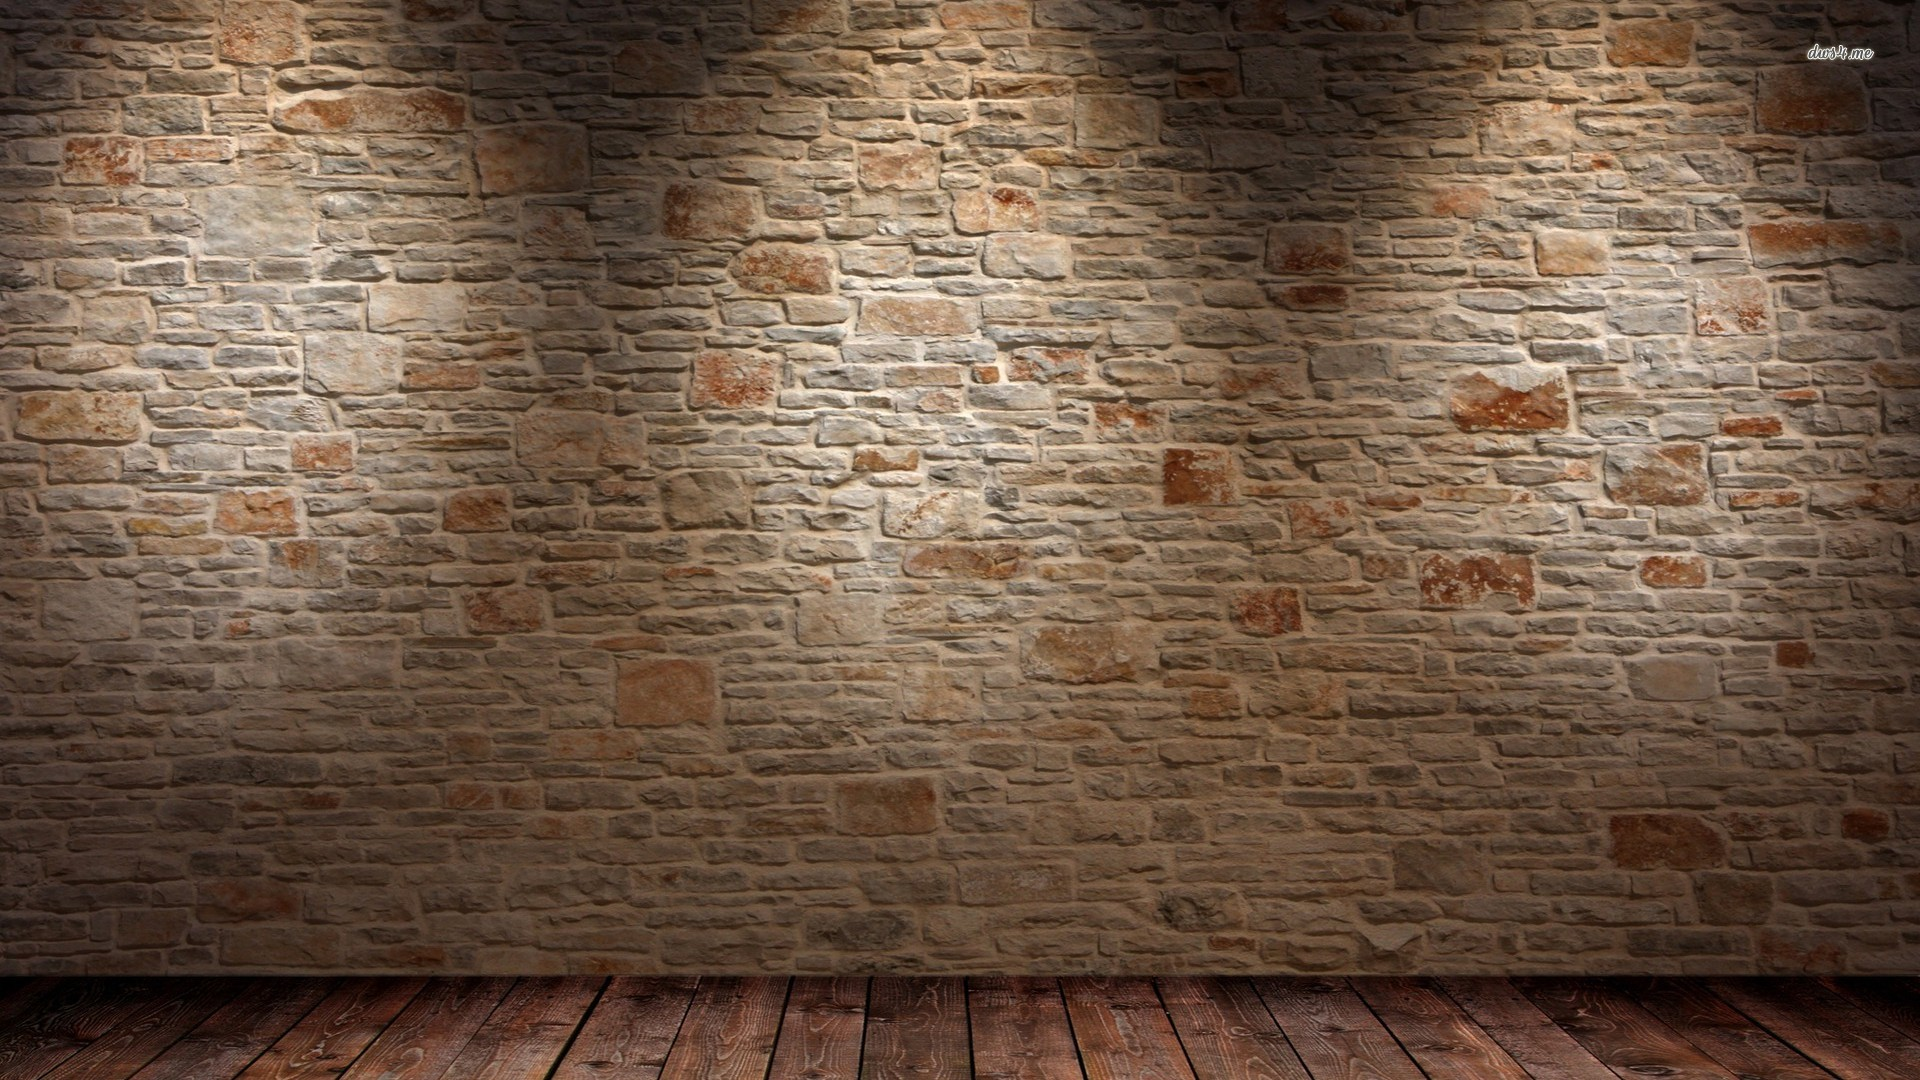 40 hd brick wallpapers backgrounds for free download for Home wallpaper wood